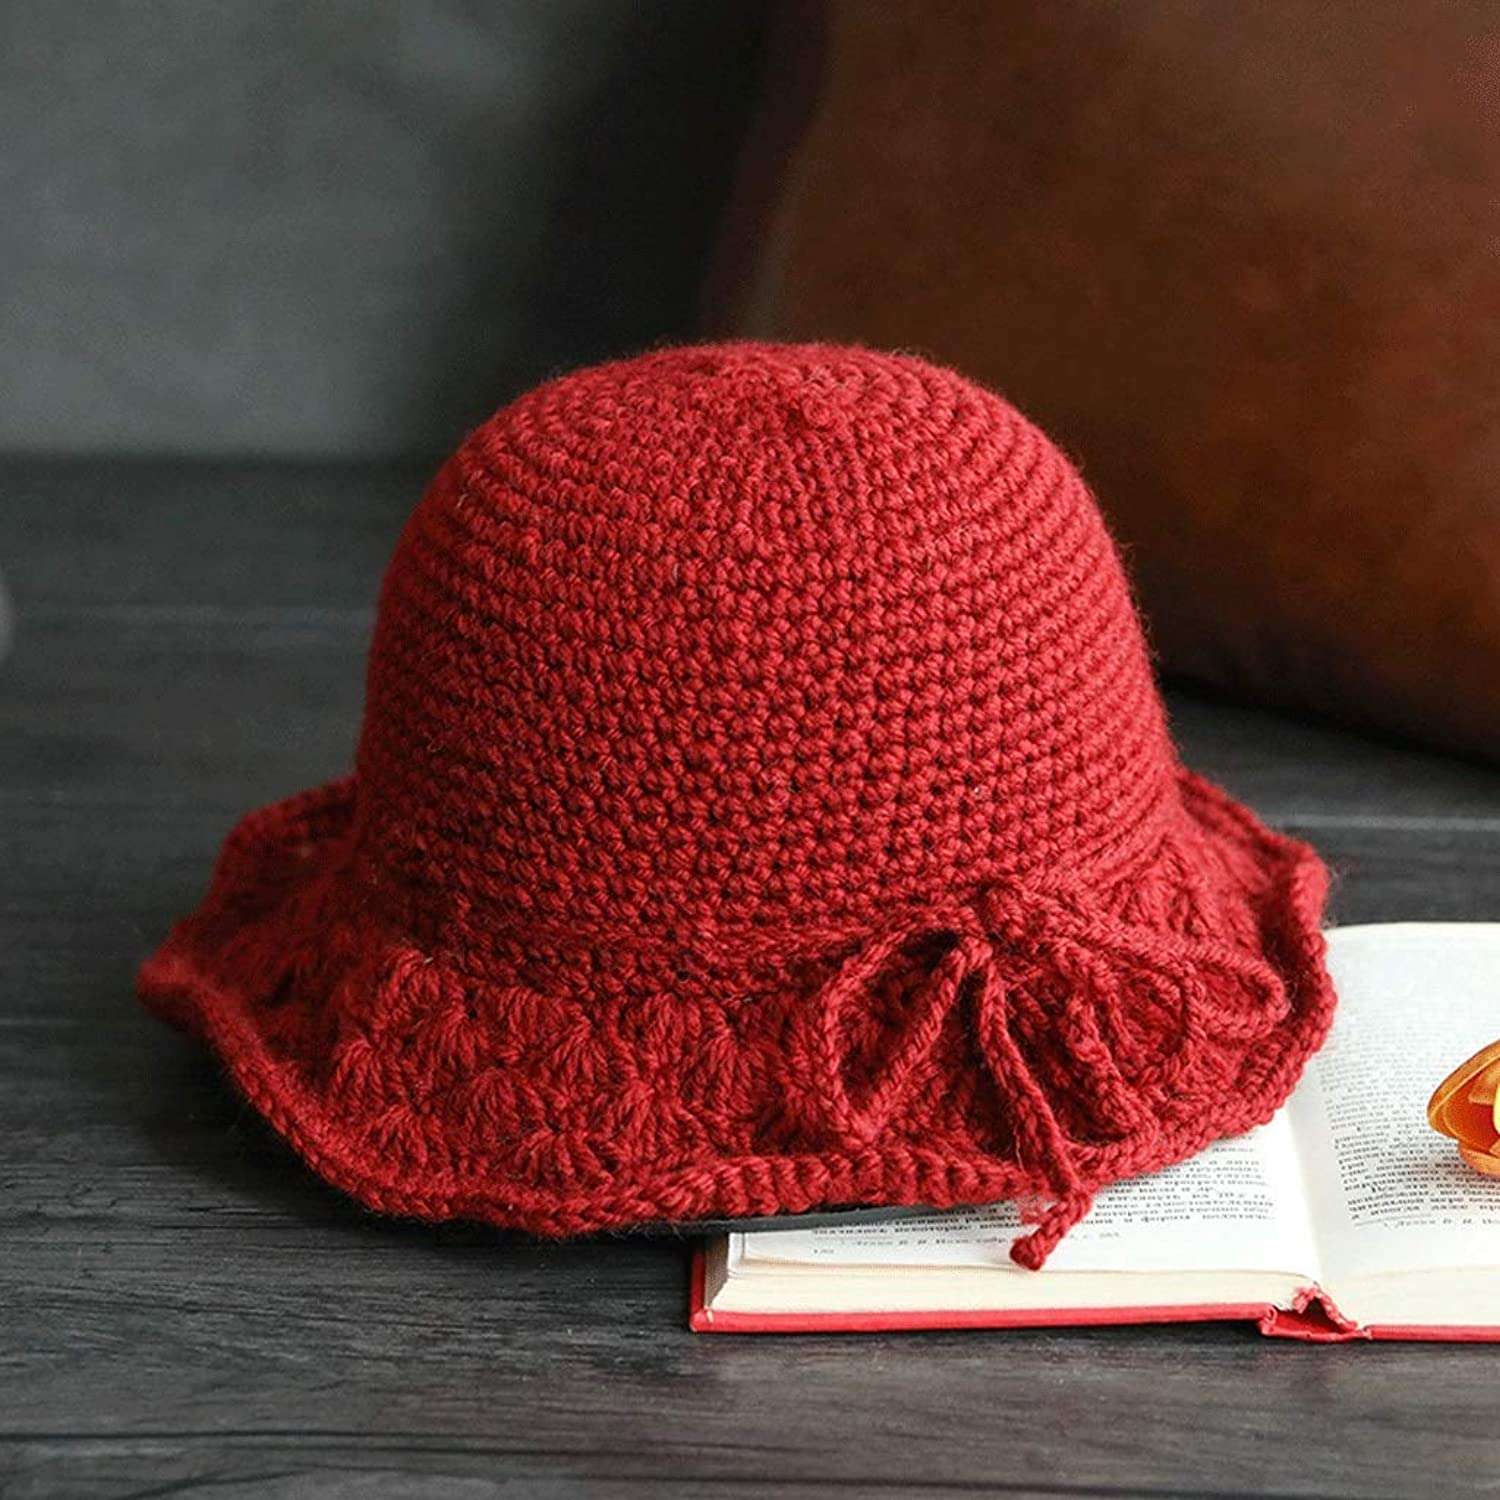 ZXW hat  Female Autumn and Winter Korean Wool Blend Crochet Soft Foldable Wool Cap (color   RED, Size   5456cm)